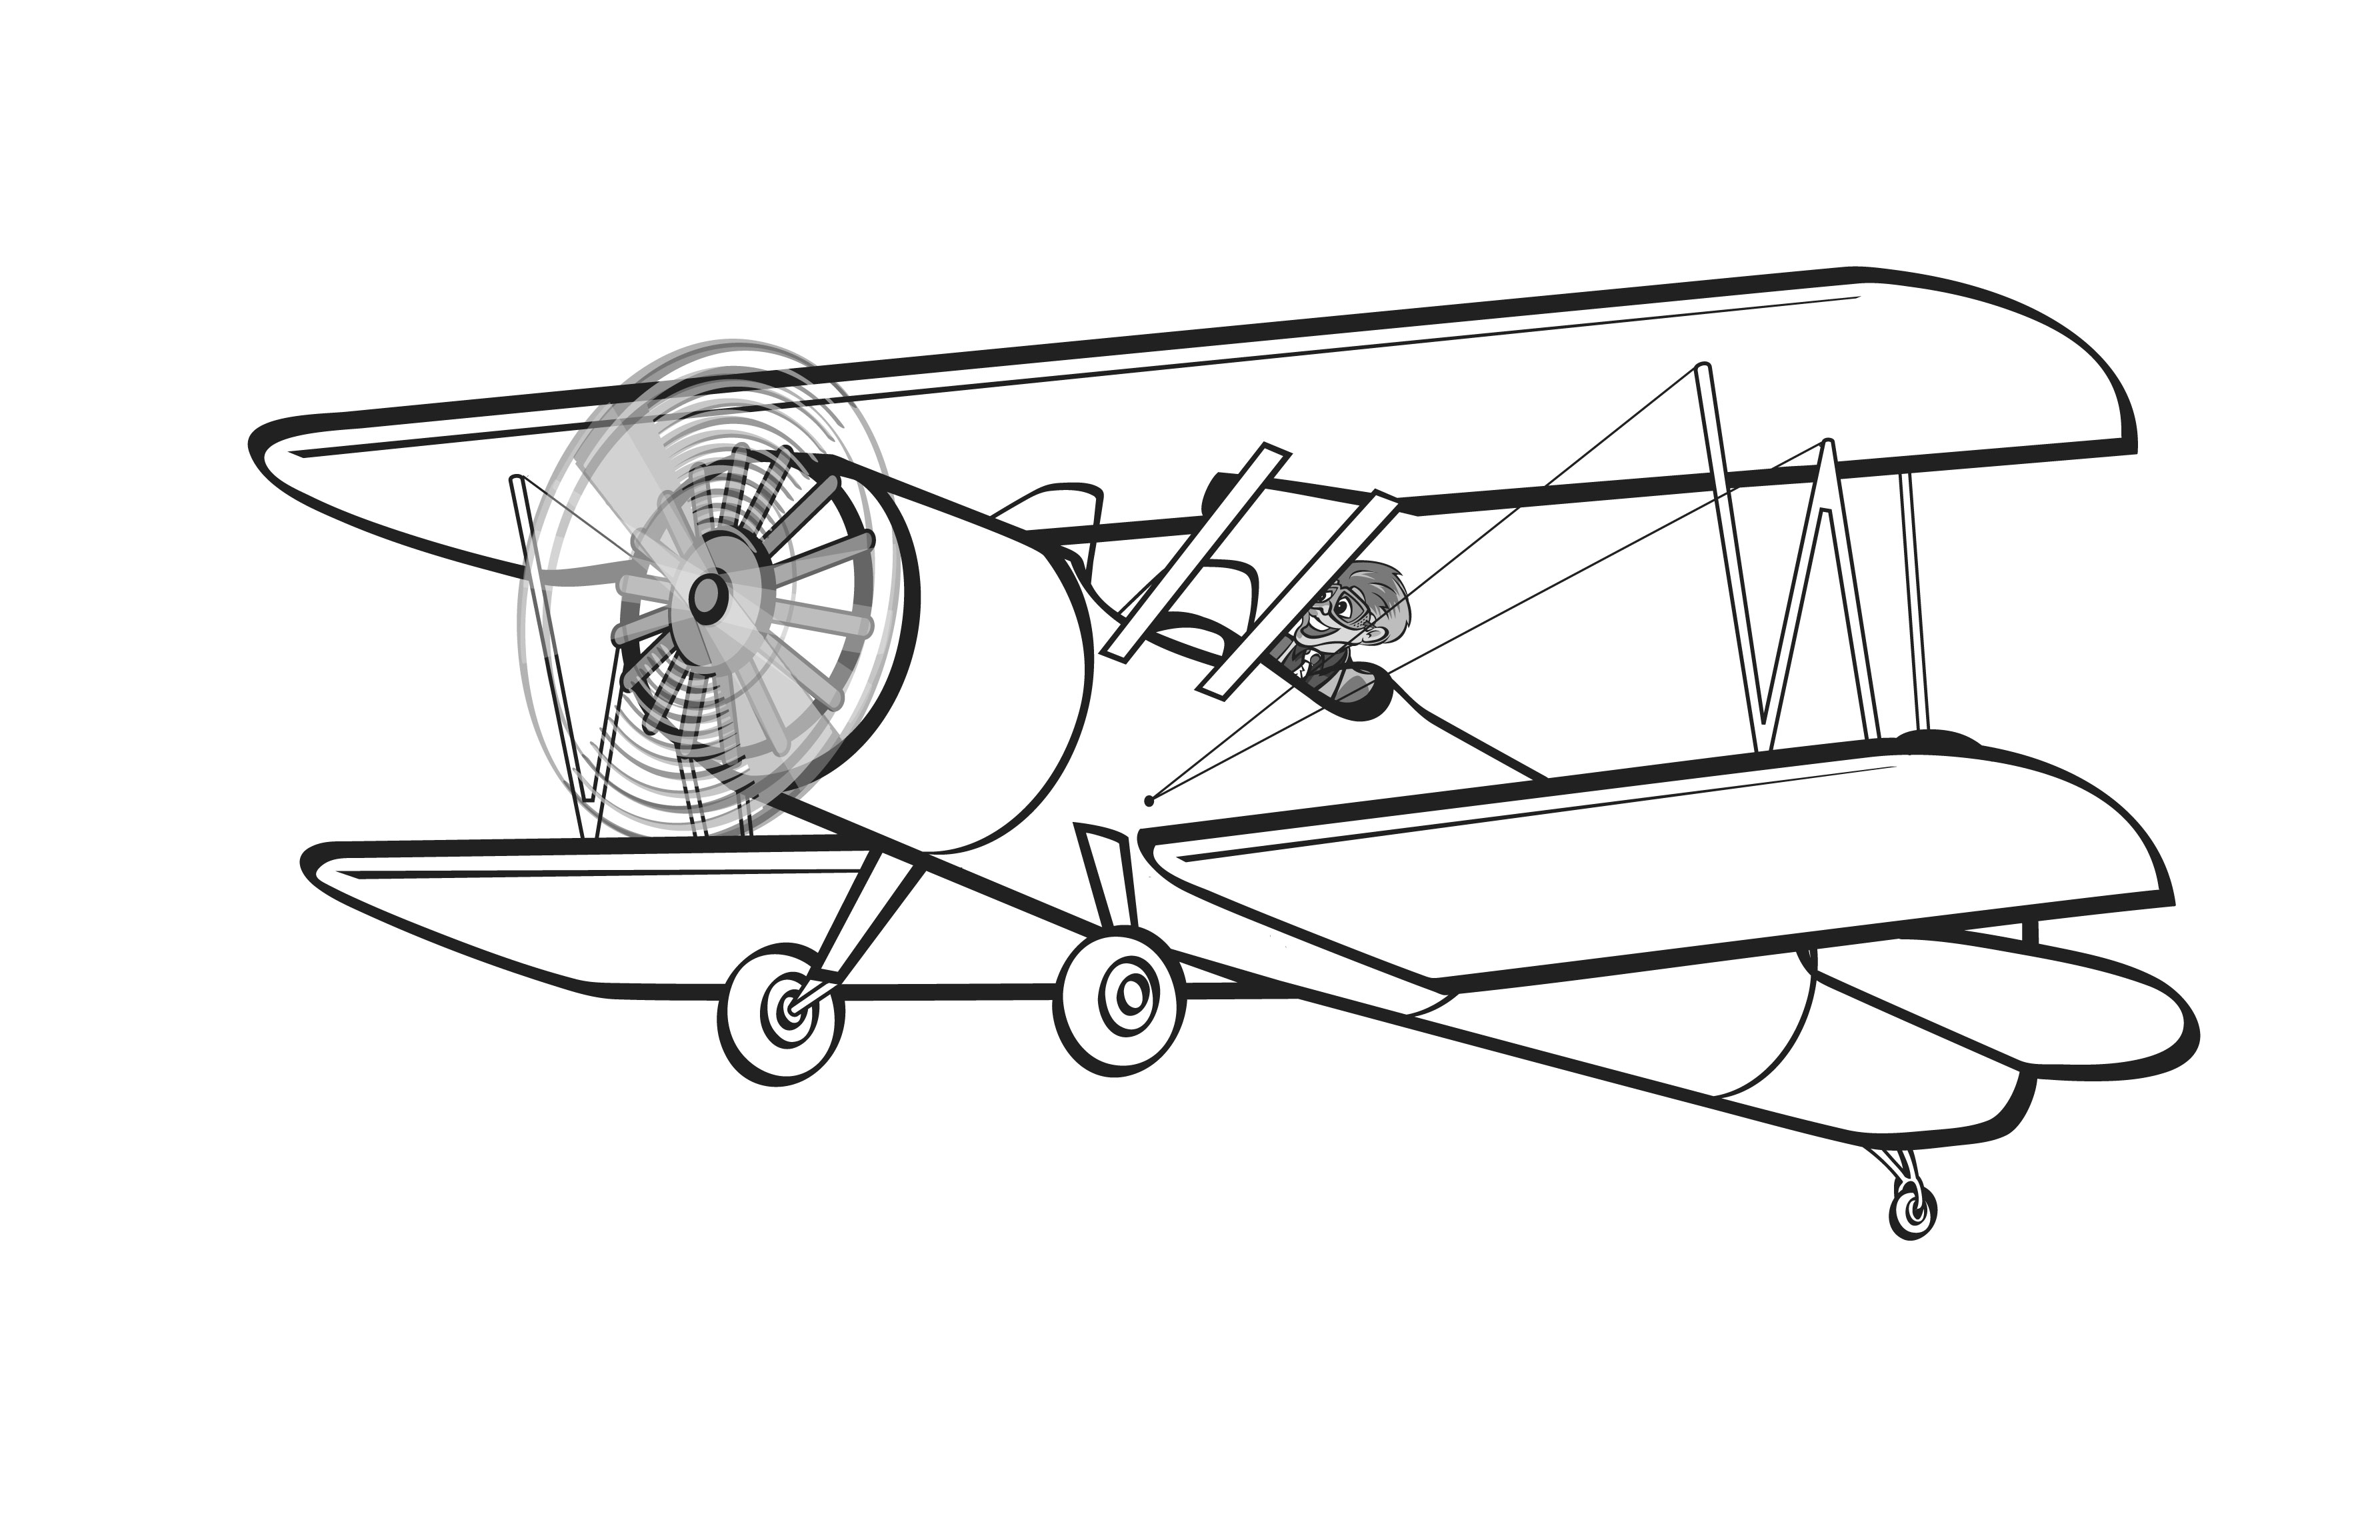 Black and white old fashioned airplane drawing clipart image free Vintage Airplane Clipart | Free download best Vintage Airplane ... image free